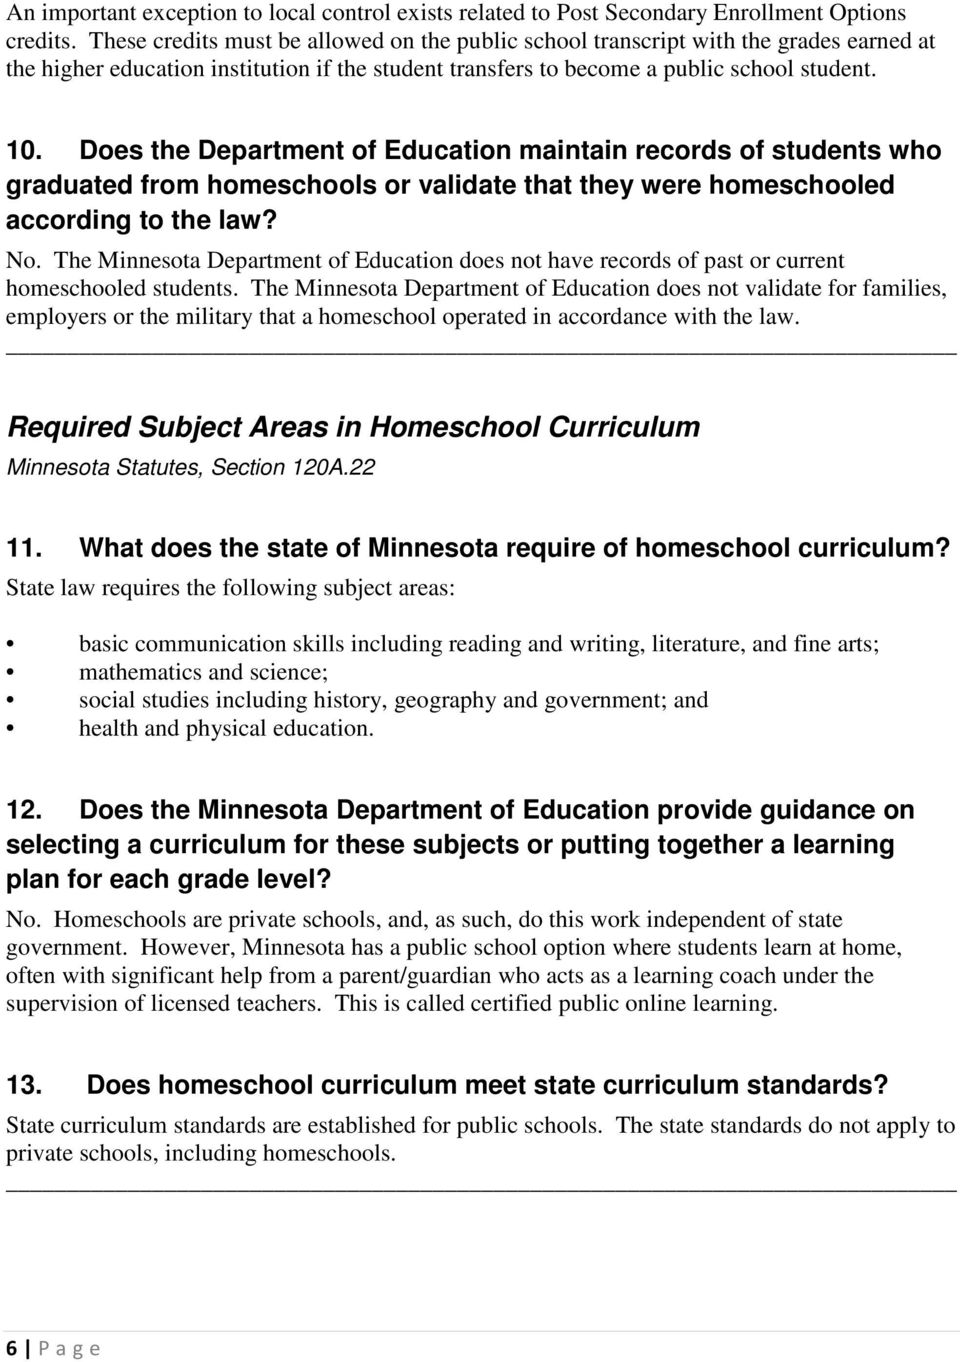 Does the Department of Education maintain records of students who graduated from homeschools or validate that they were homeschooled according to the law? No.